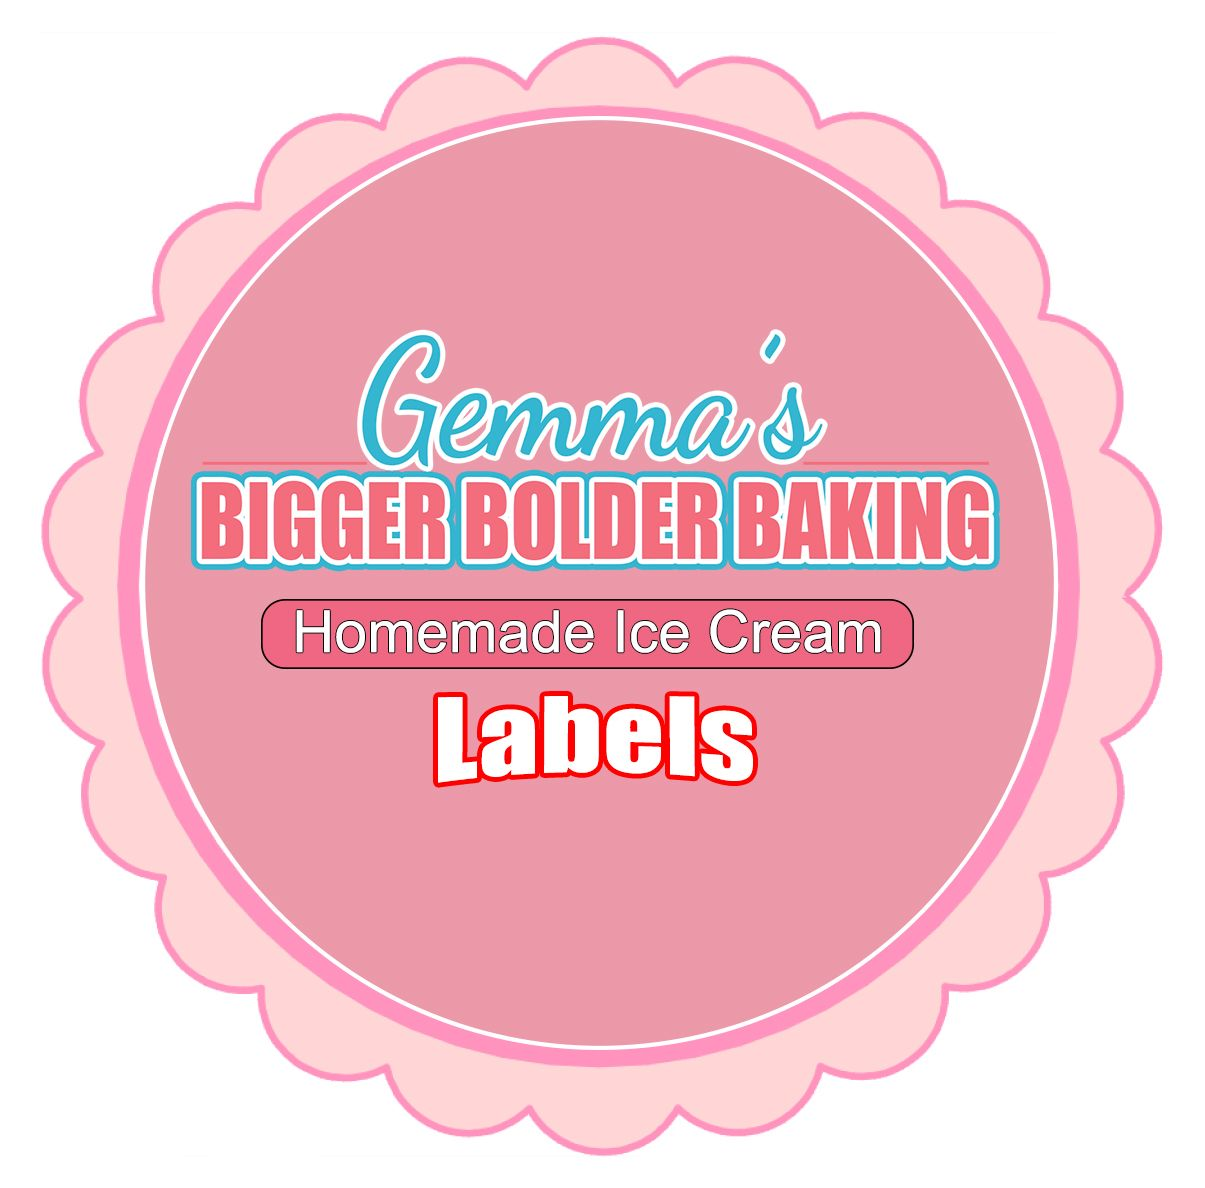 Homemade Ice Creams Labels Template | Label templates, Homemade ice ...